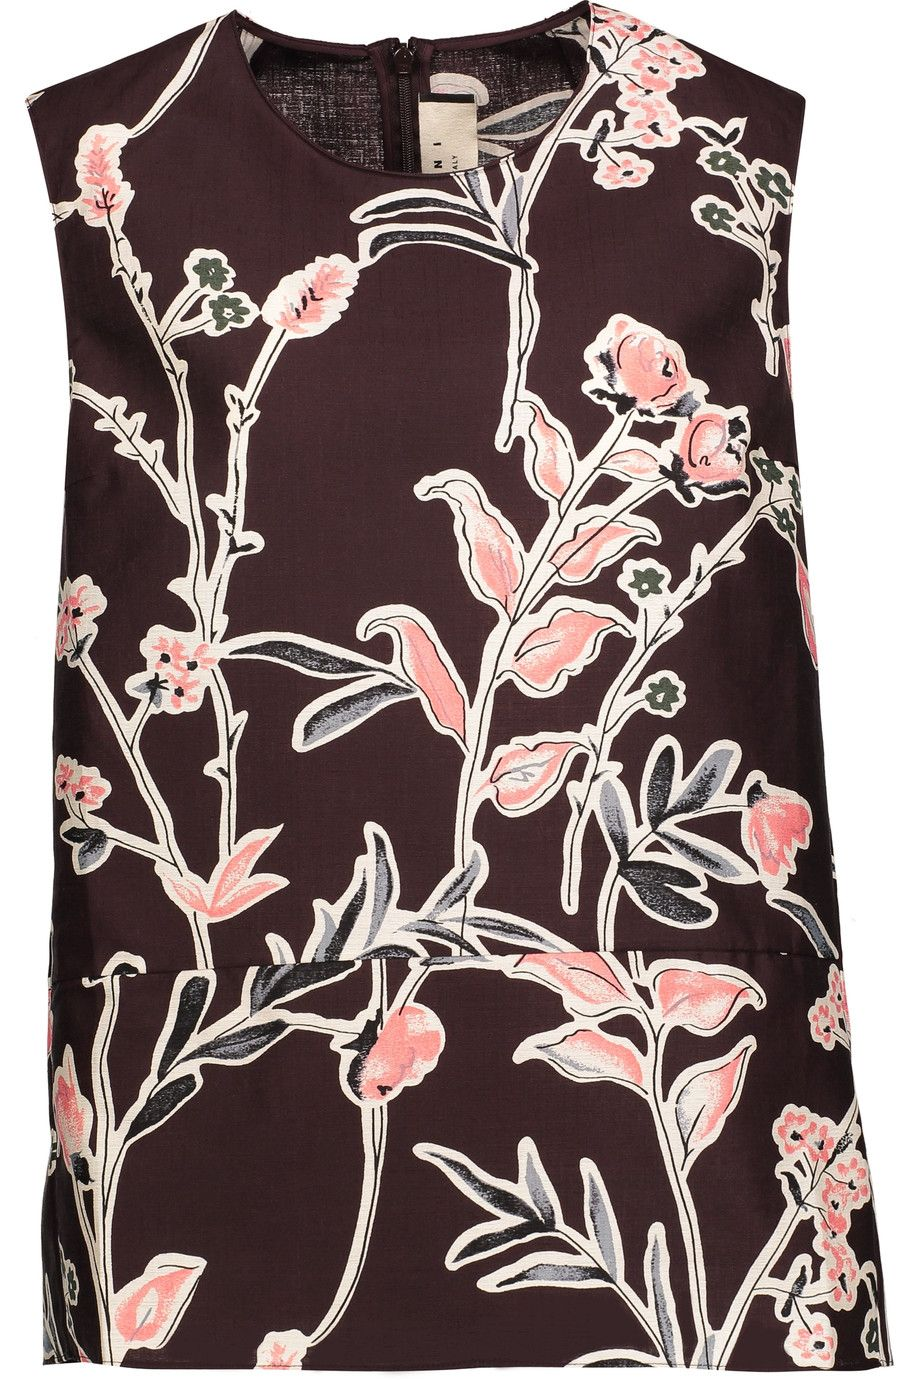 MARNI Floral-Print Cotton And Silk-Blend Top. #marni #cloth #top